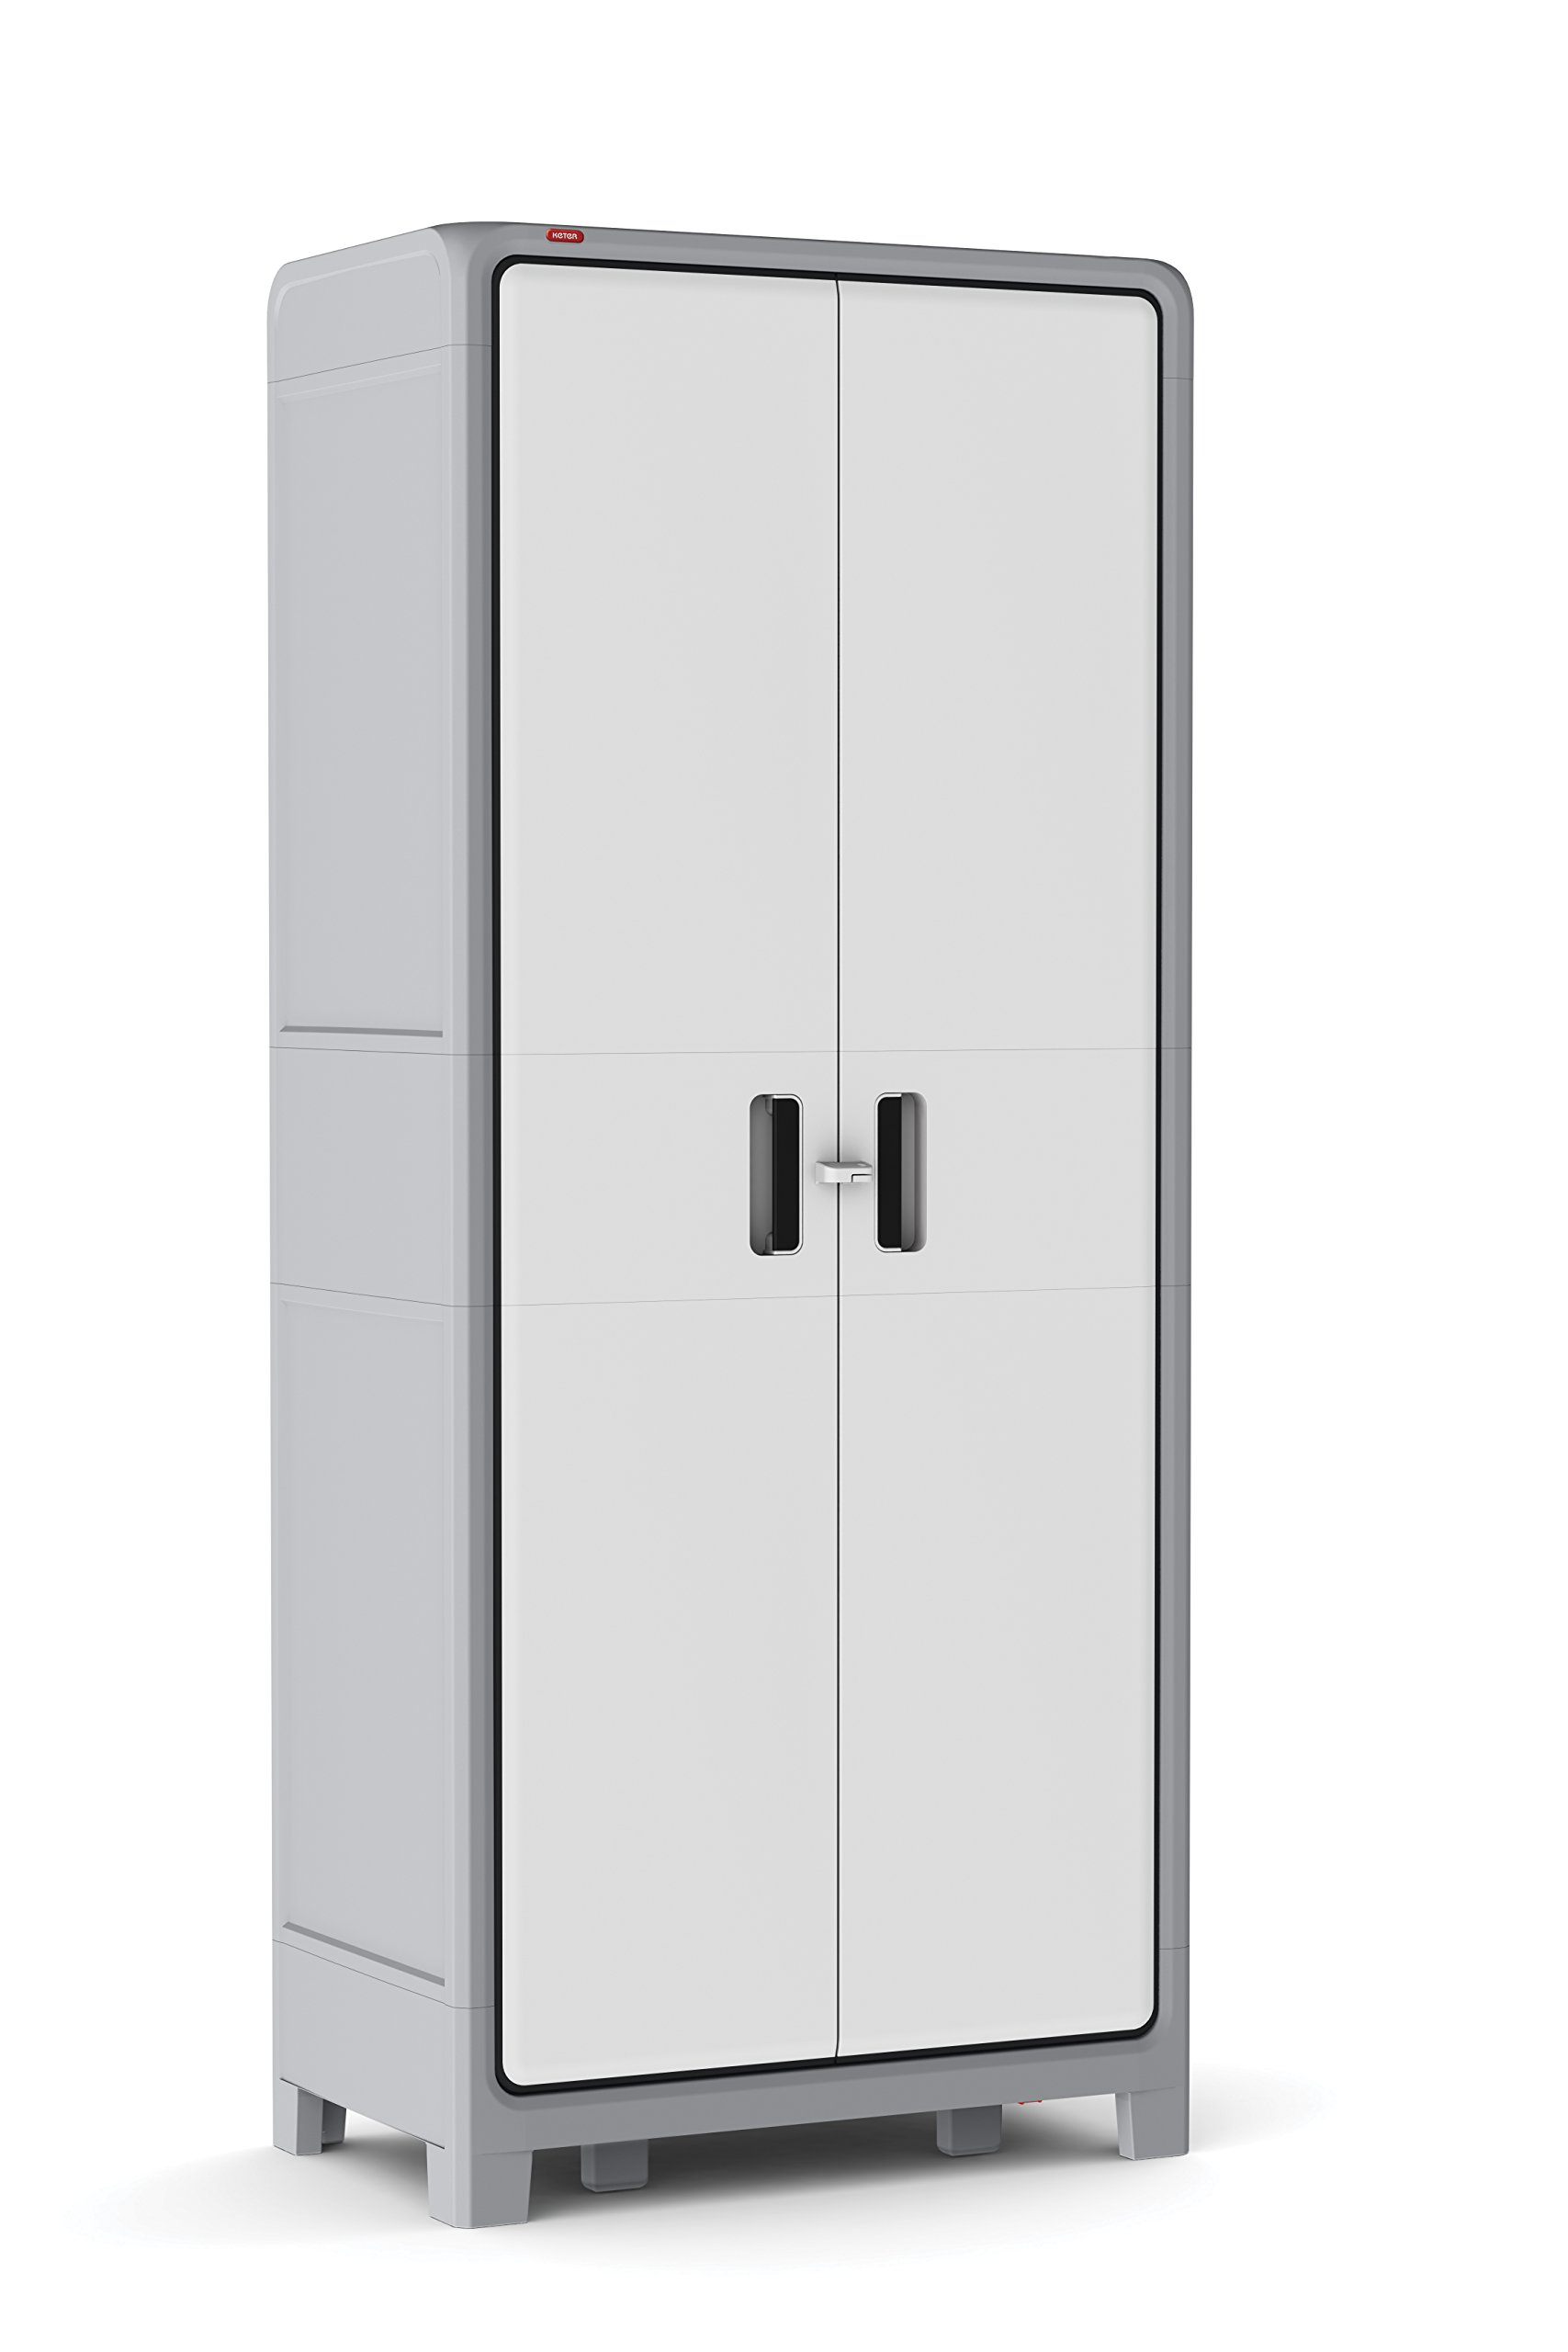 Keter Optima Wonder 72 x 31 x 18 in. Free Standing Plastic Tall Storage Cabinet with 4 Adjustable Shelves, White & Grey by Keter